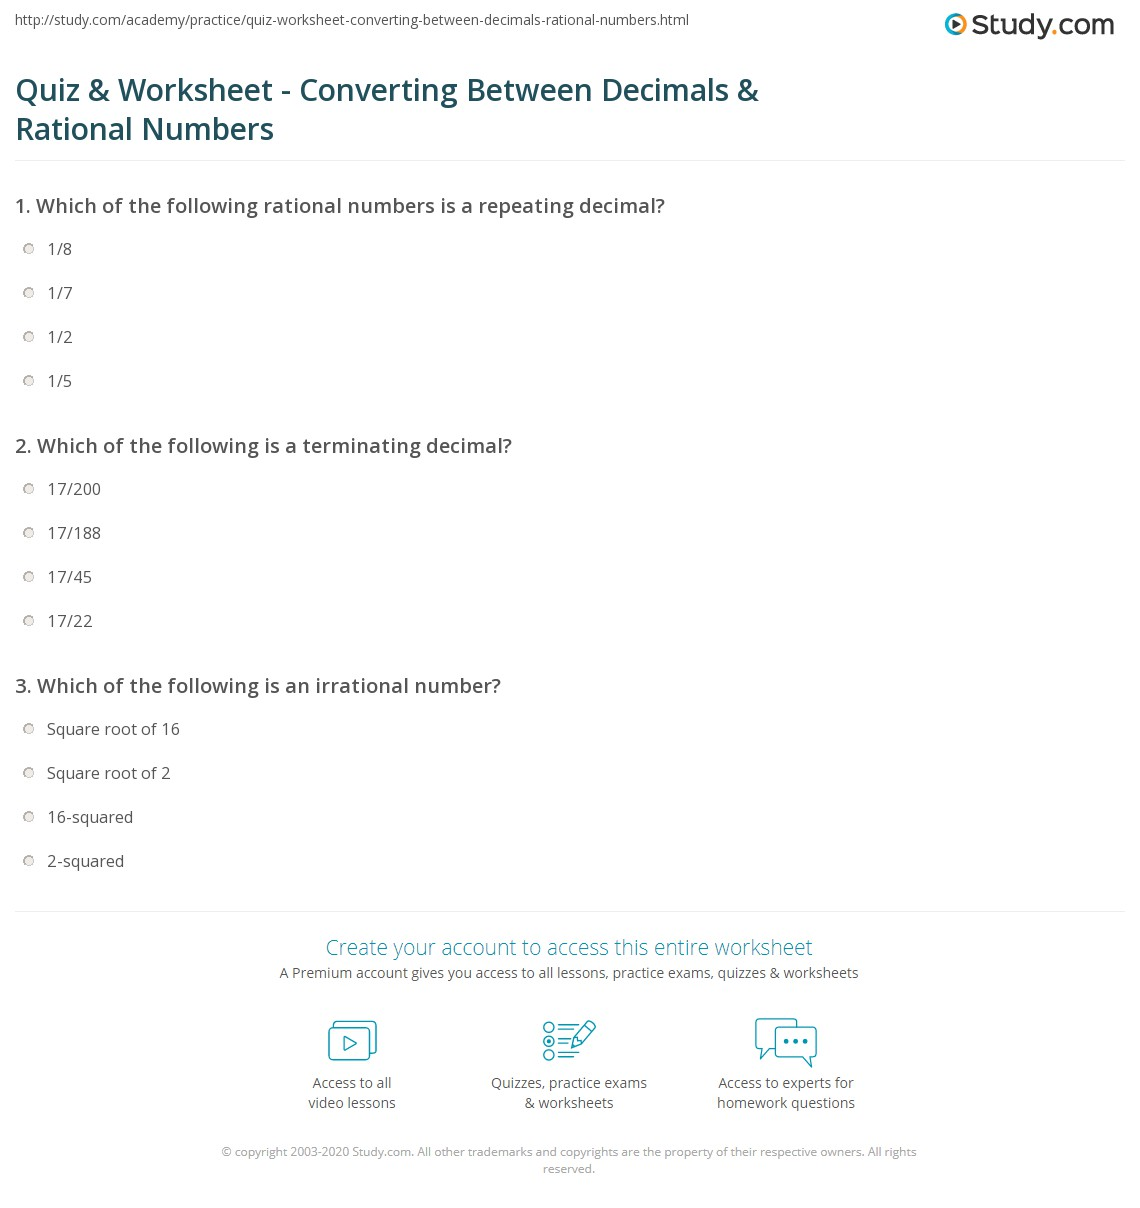 Quiz Worksheet Converting Between Decimals Rational Numbers – Rational or Irrational Worksheet